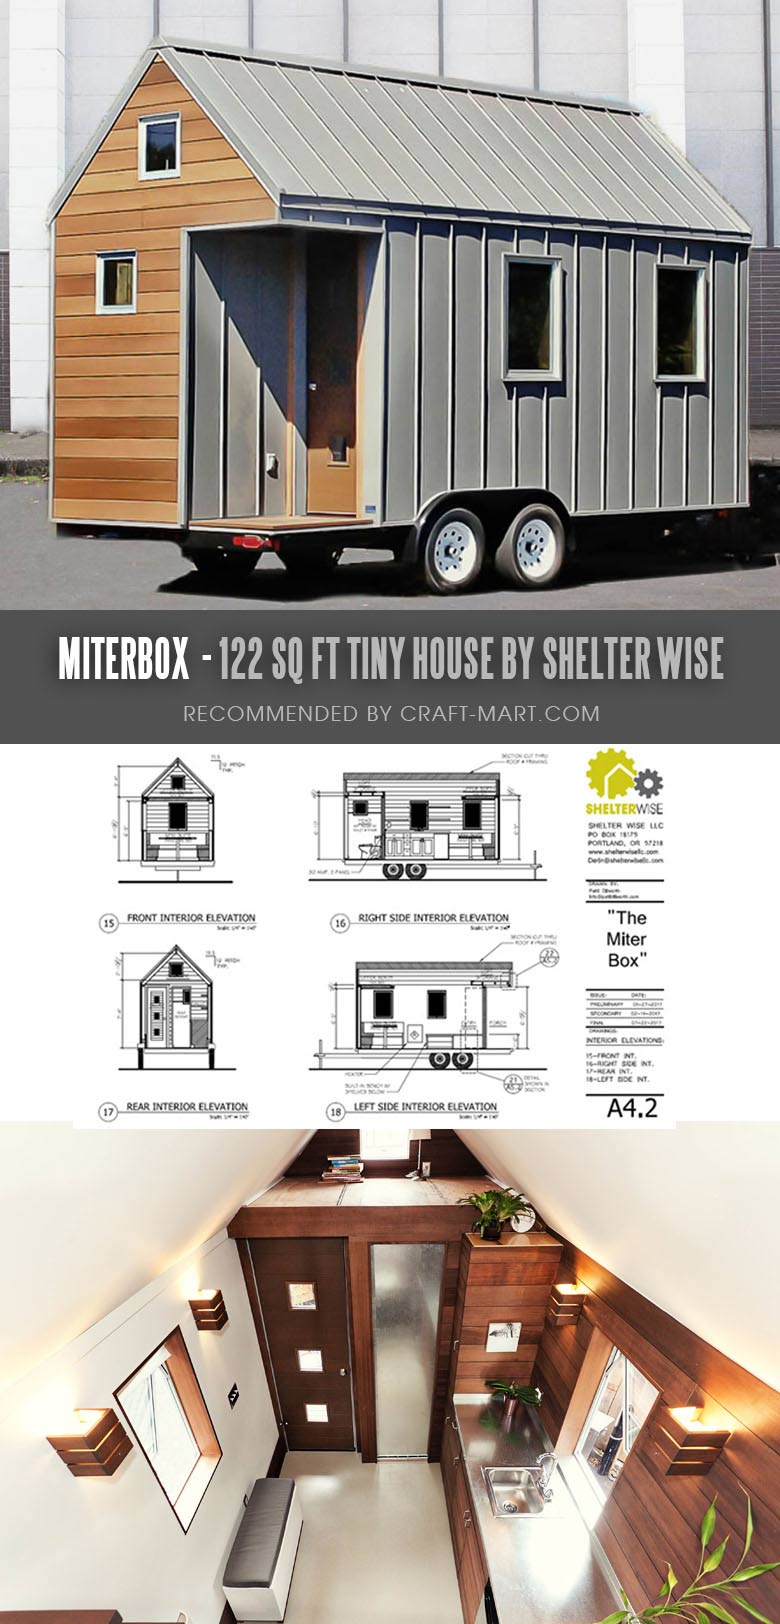 Tiny House Trailer Miterbox - A Modern Retreat or Minimalist Flat - one of the most affordable tiny houses on wheels. You can order it to be built or build it yourself using this mobile tiny house plans. #tinyhouse